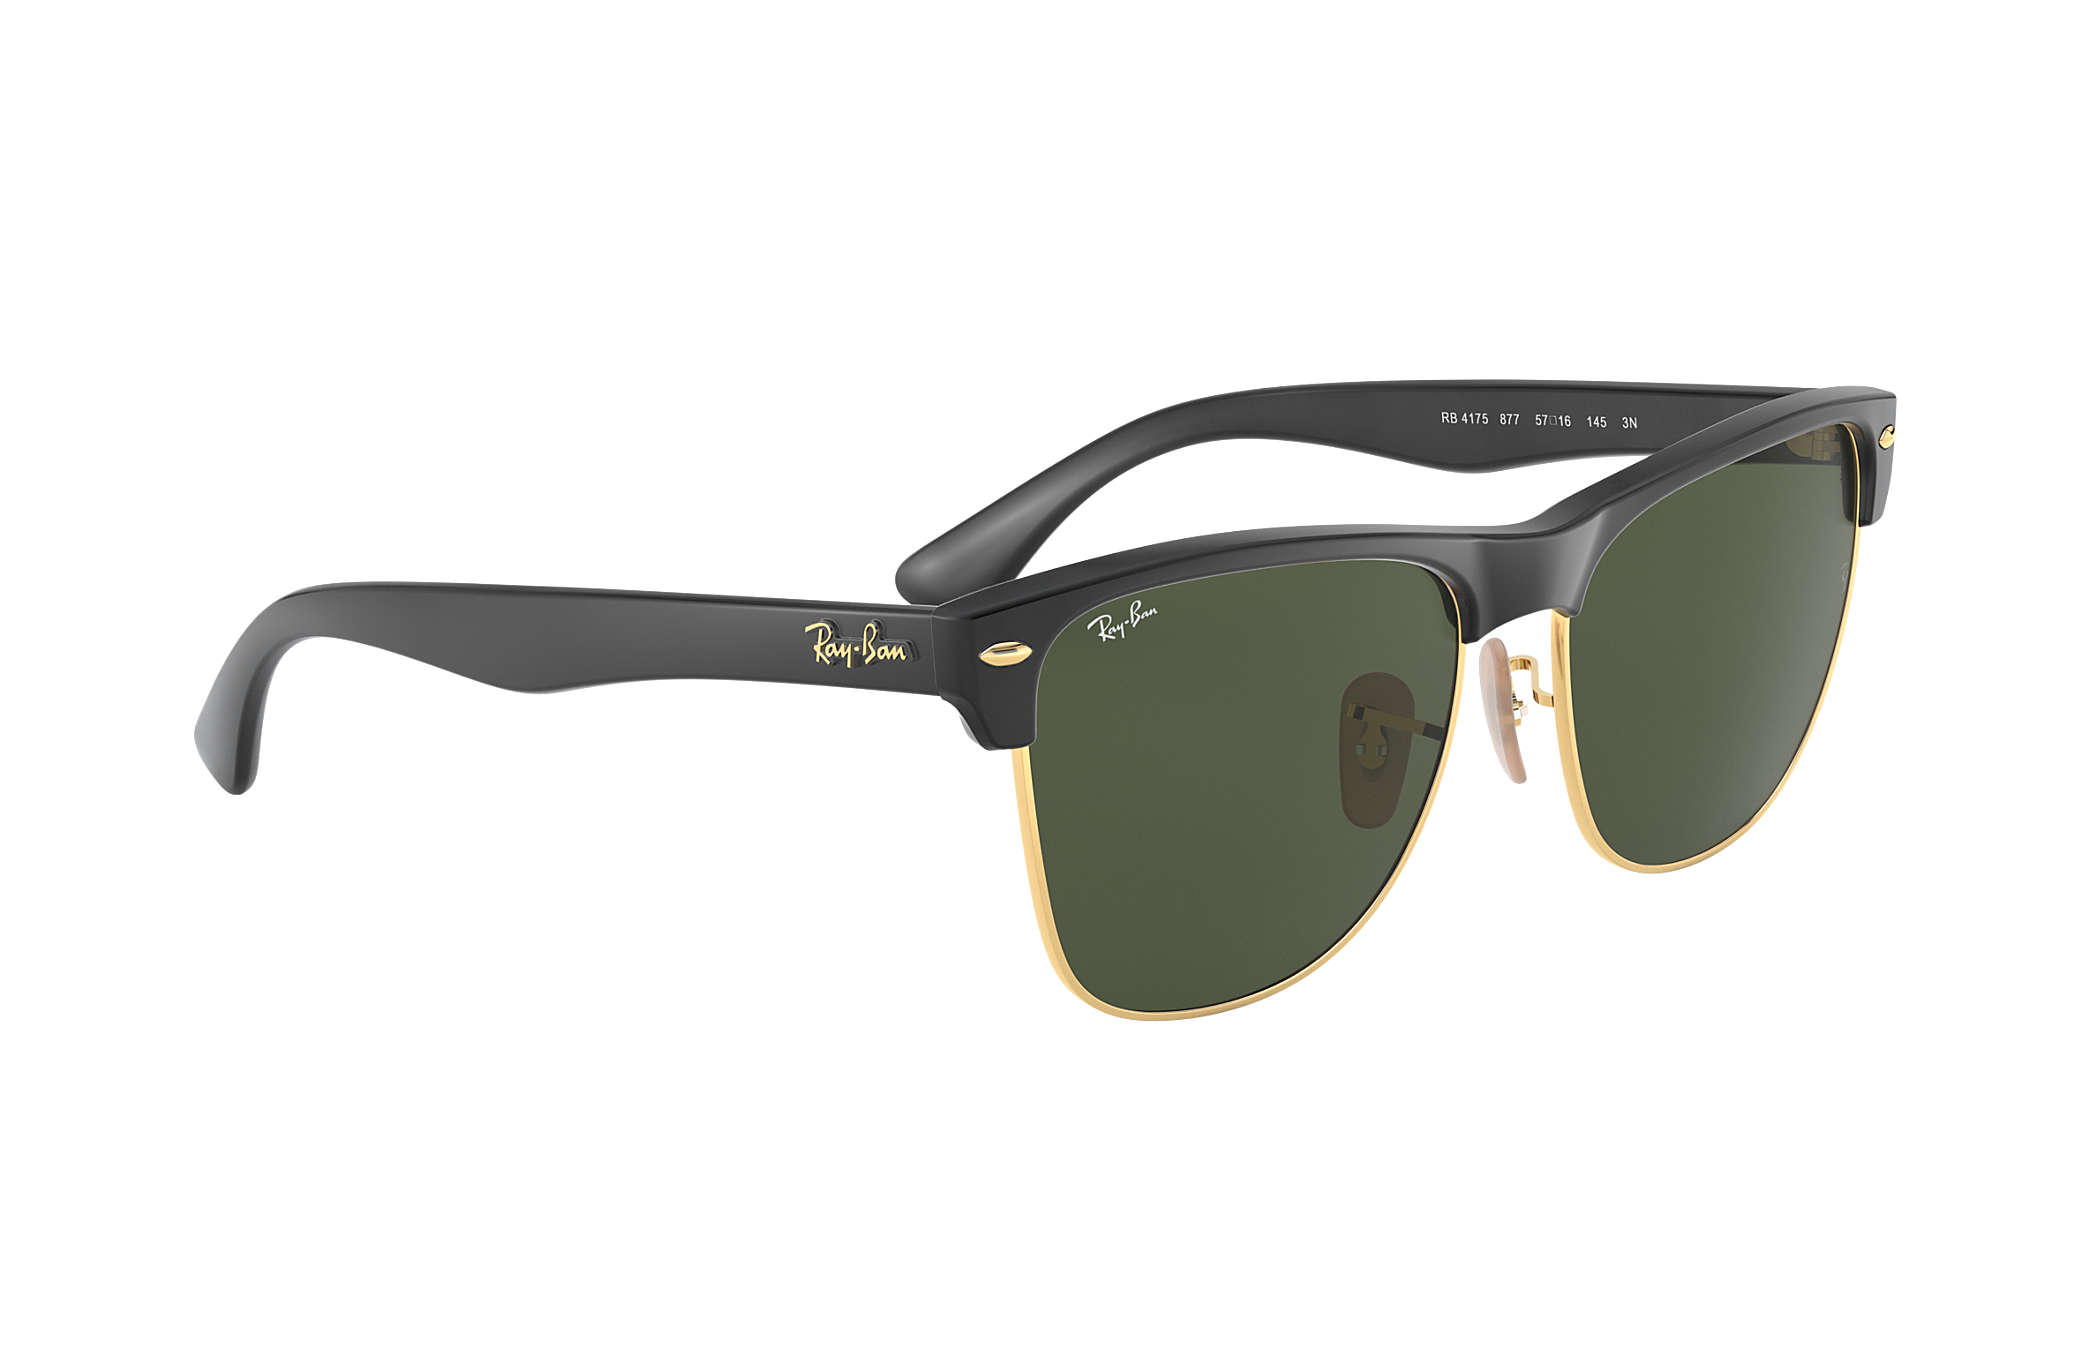 Ray-Ban Clubmaster Oversized RB4175 Black - Nylon - Green Lenses ... 9e3e5d4b39